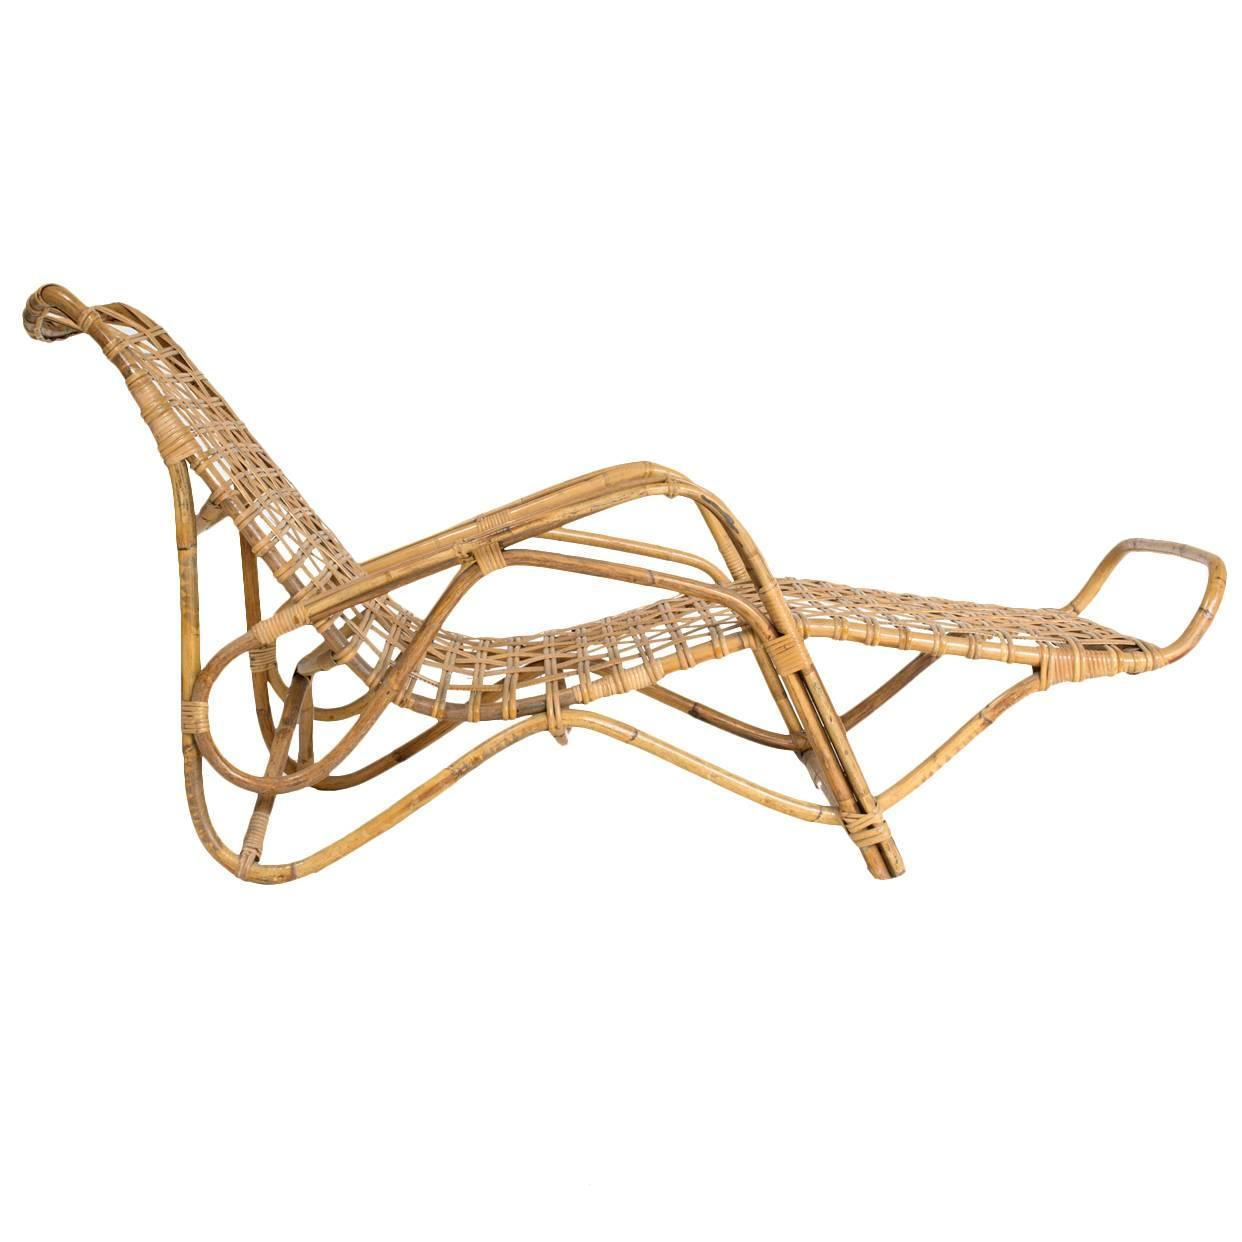 Vittorio bonacina rattan chaise longue for sale at 1stdibs for Cane chaise longue